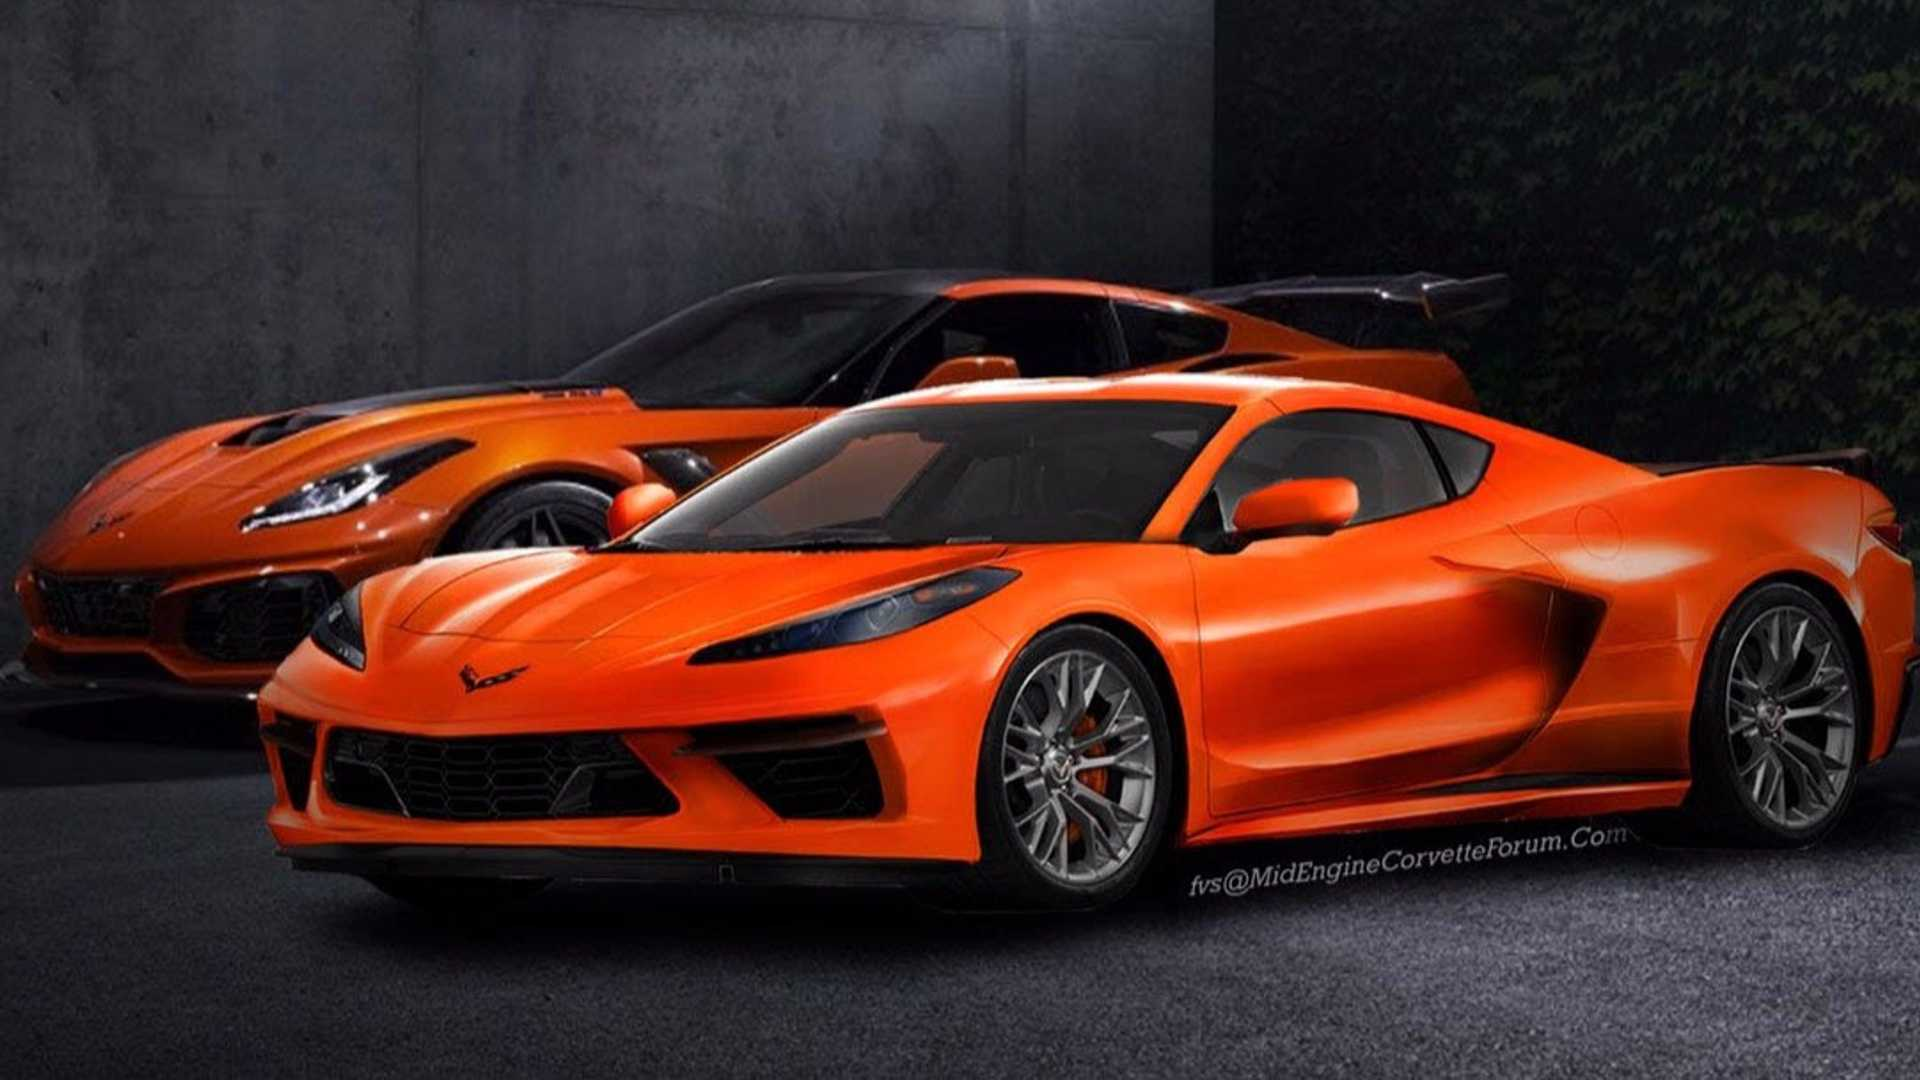 64 A 2020 Chevrolet Corvette Images Price